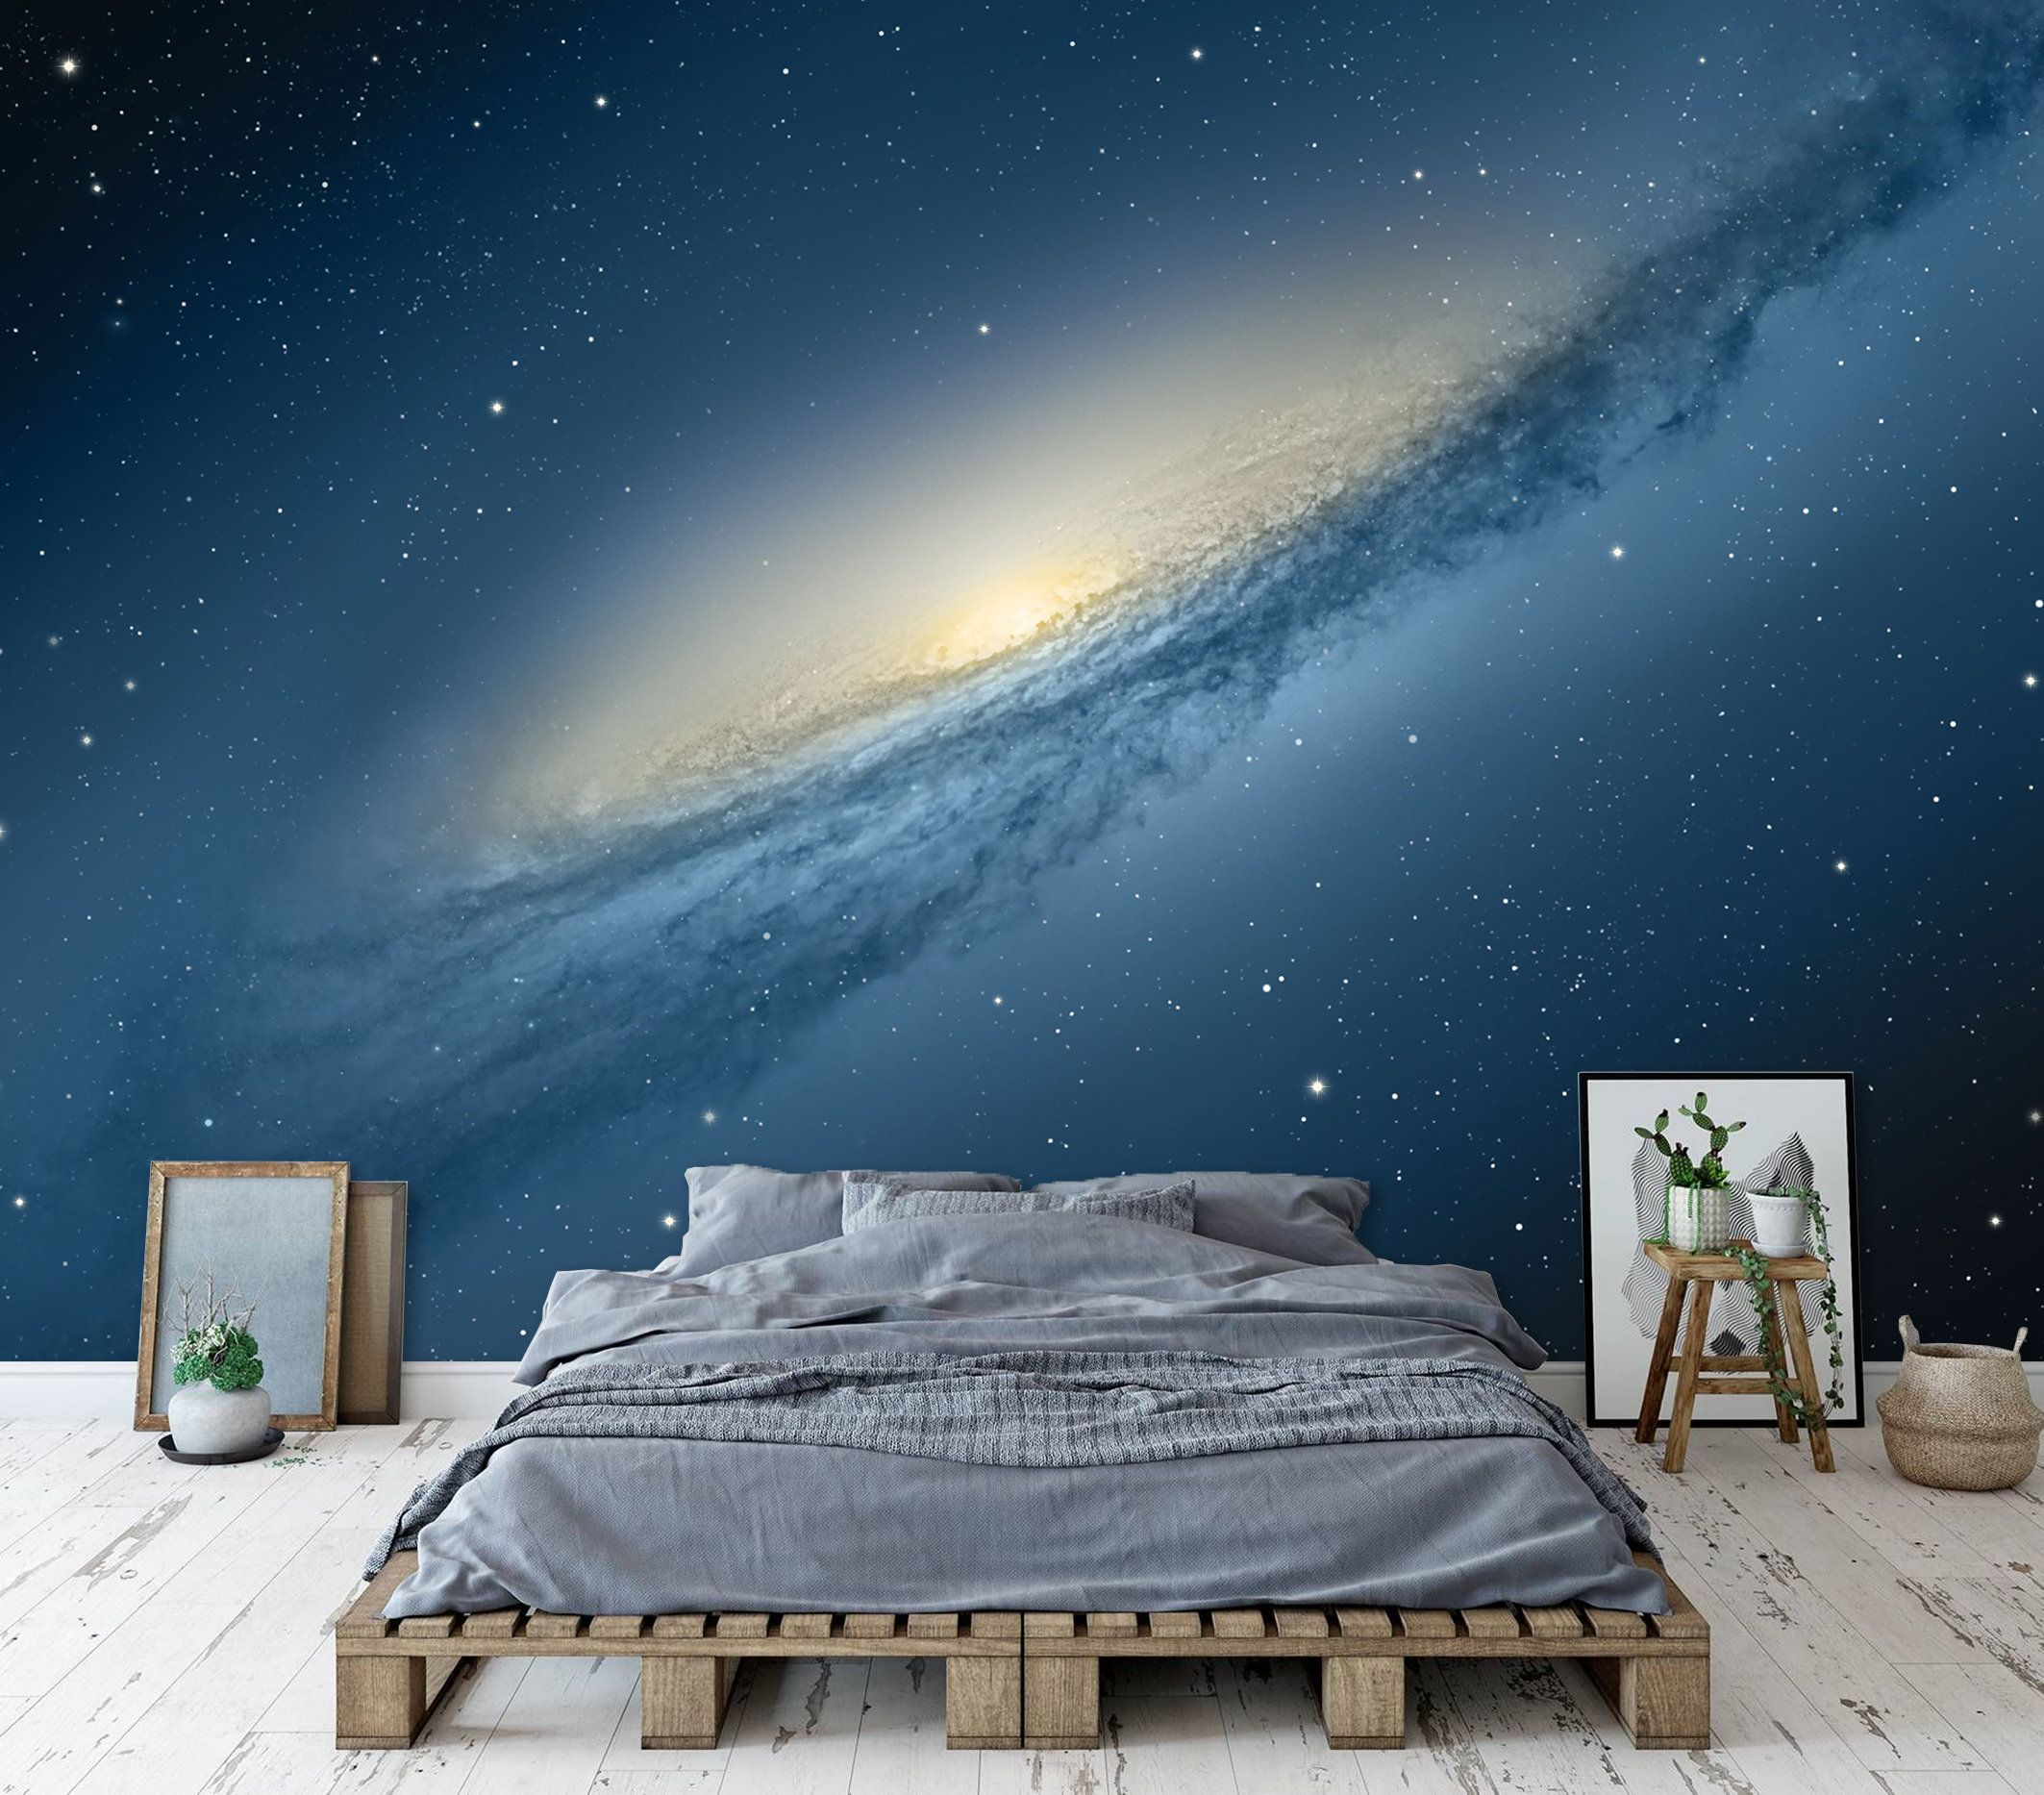 Galaxy Wallpaper Space Wallpaper Large Wall Mural Peel Stick Etsy Large Wall Murals Boy Room Wall Decor Wallpaper Space